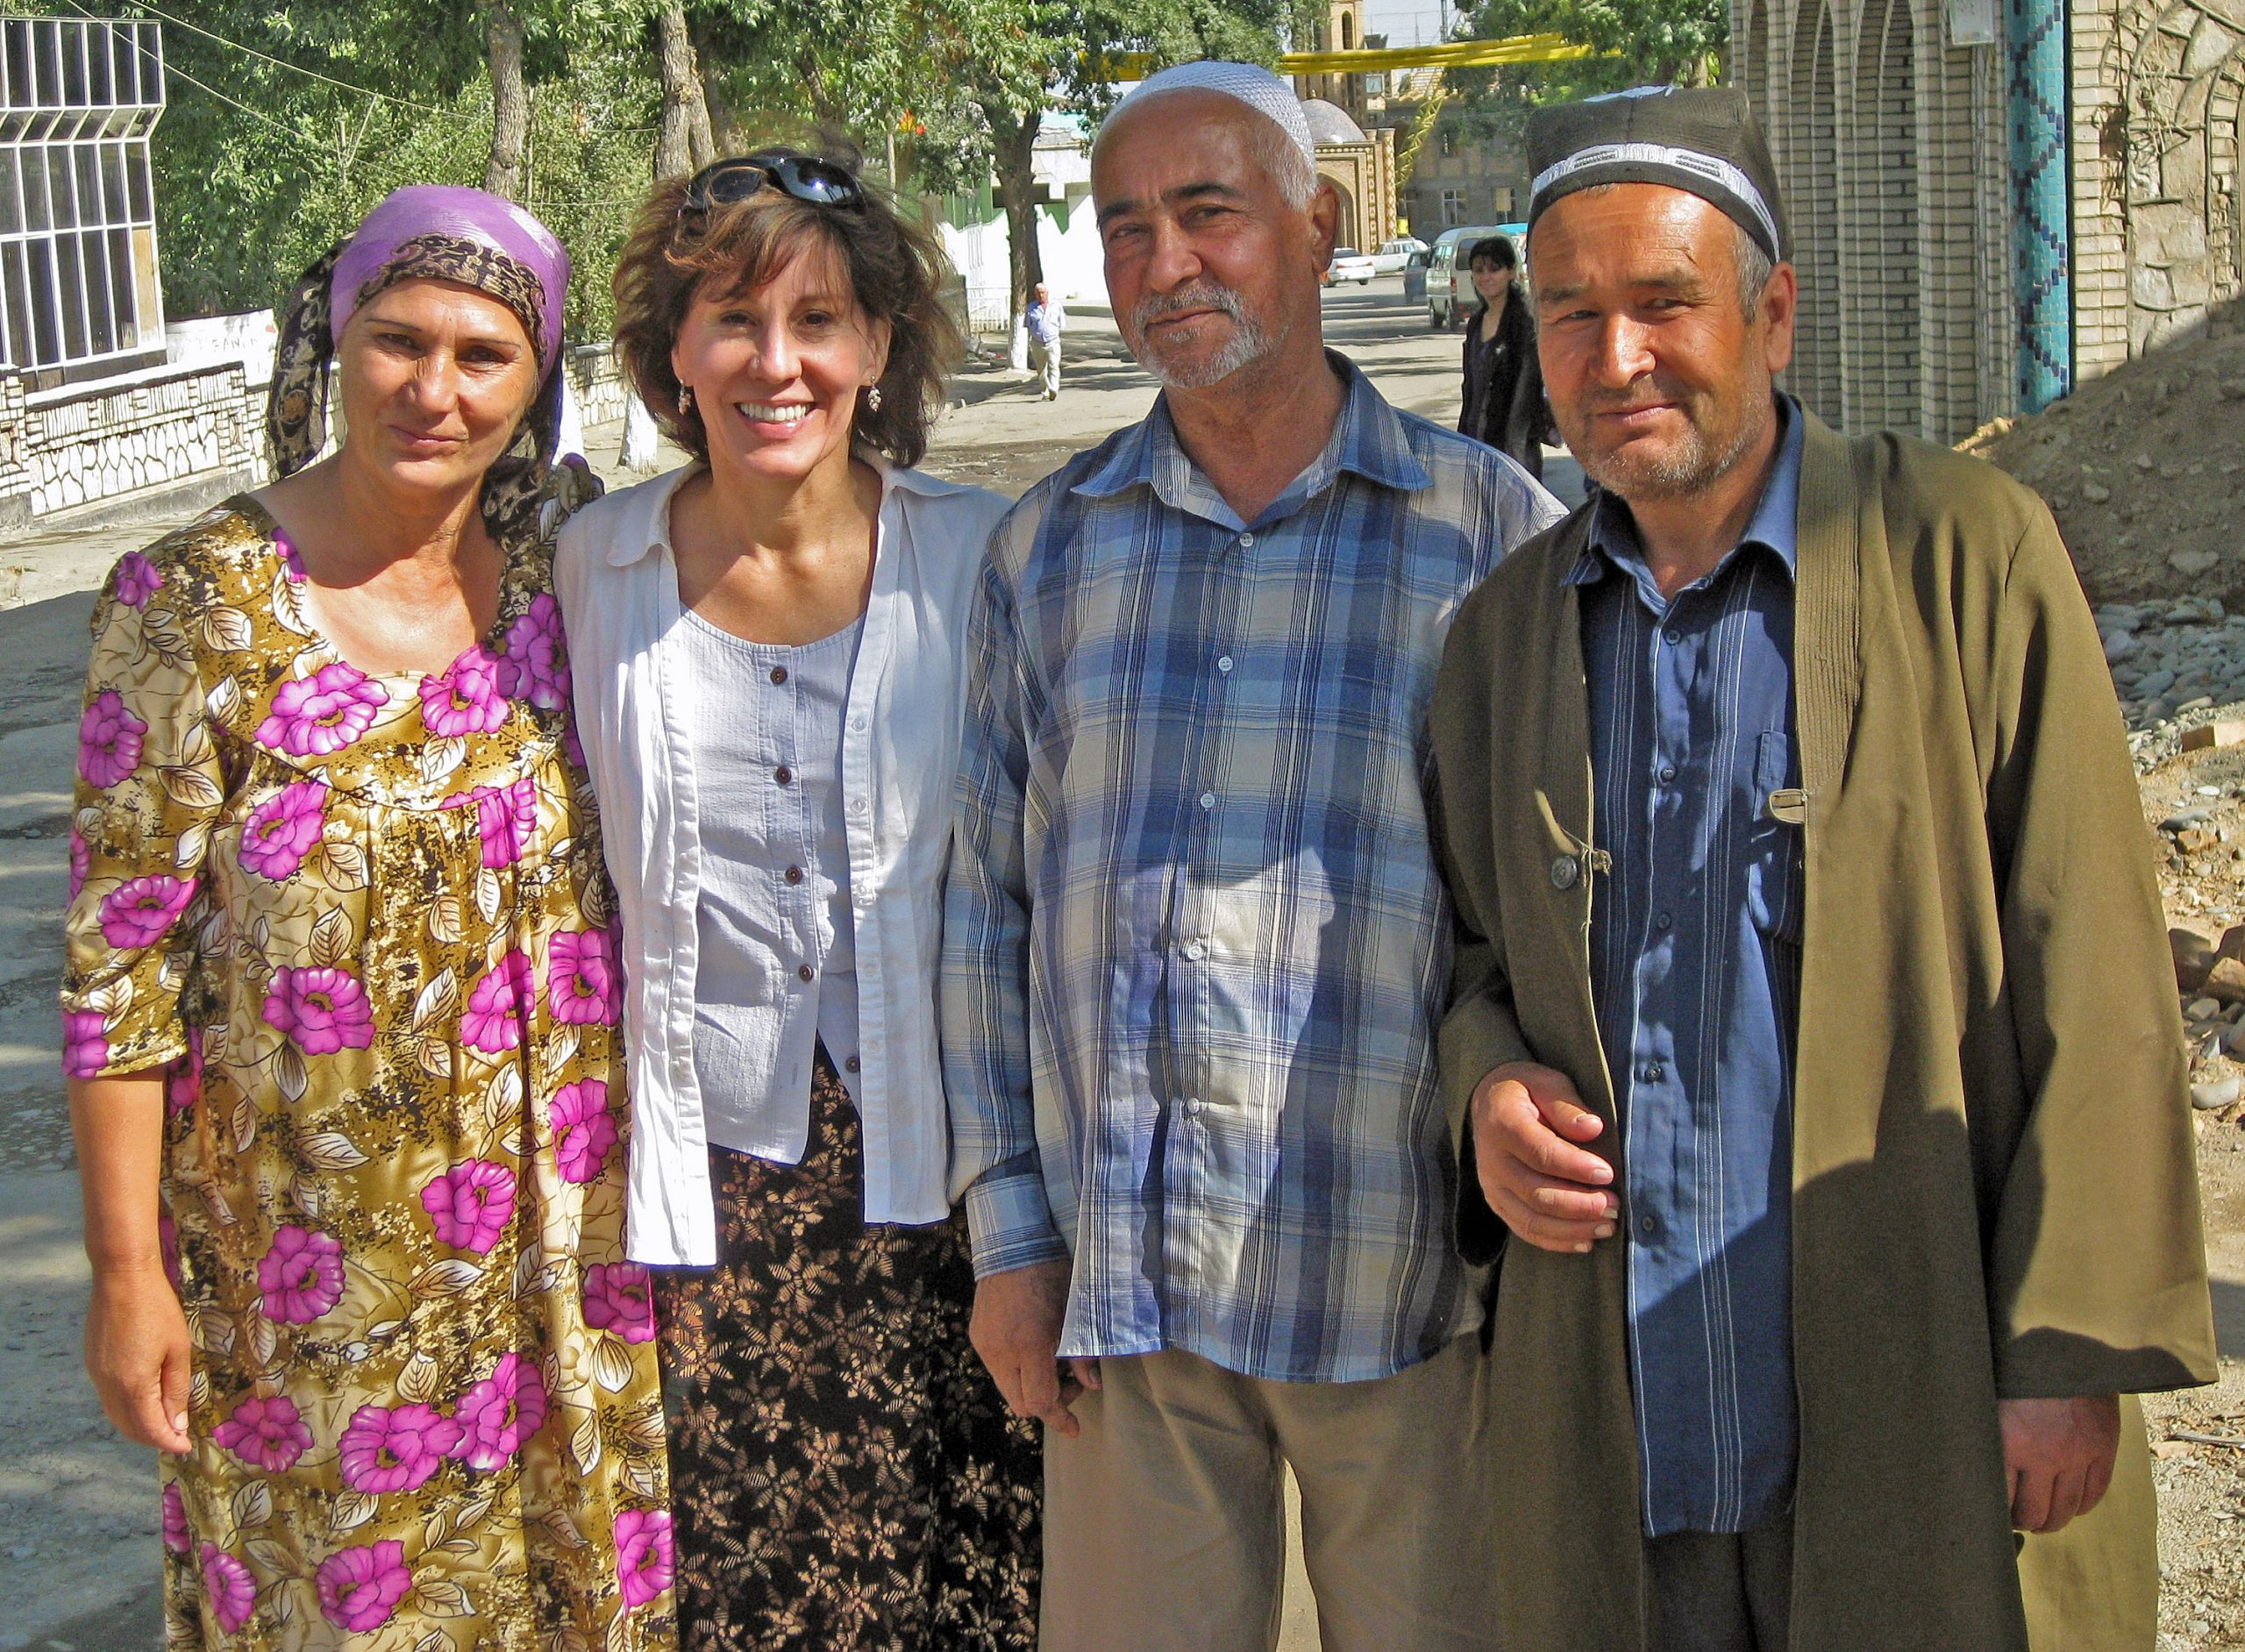 I'm surrounded by that warm and welcoming spirit of Uzbeks, and Uzbekistan (2008)